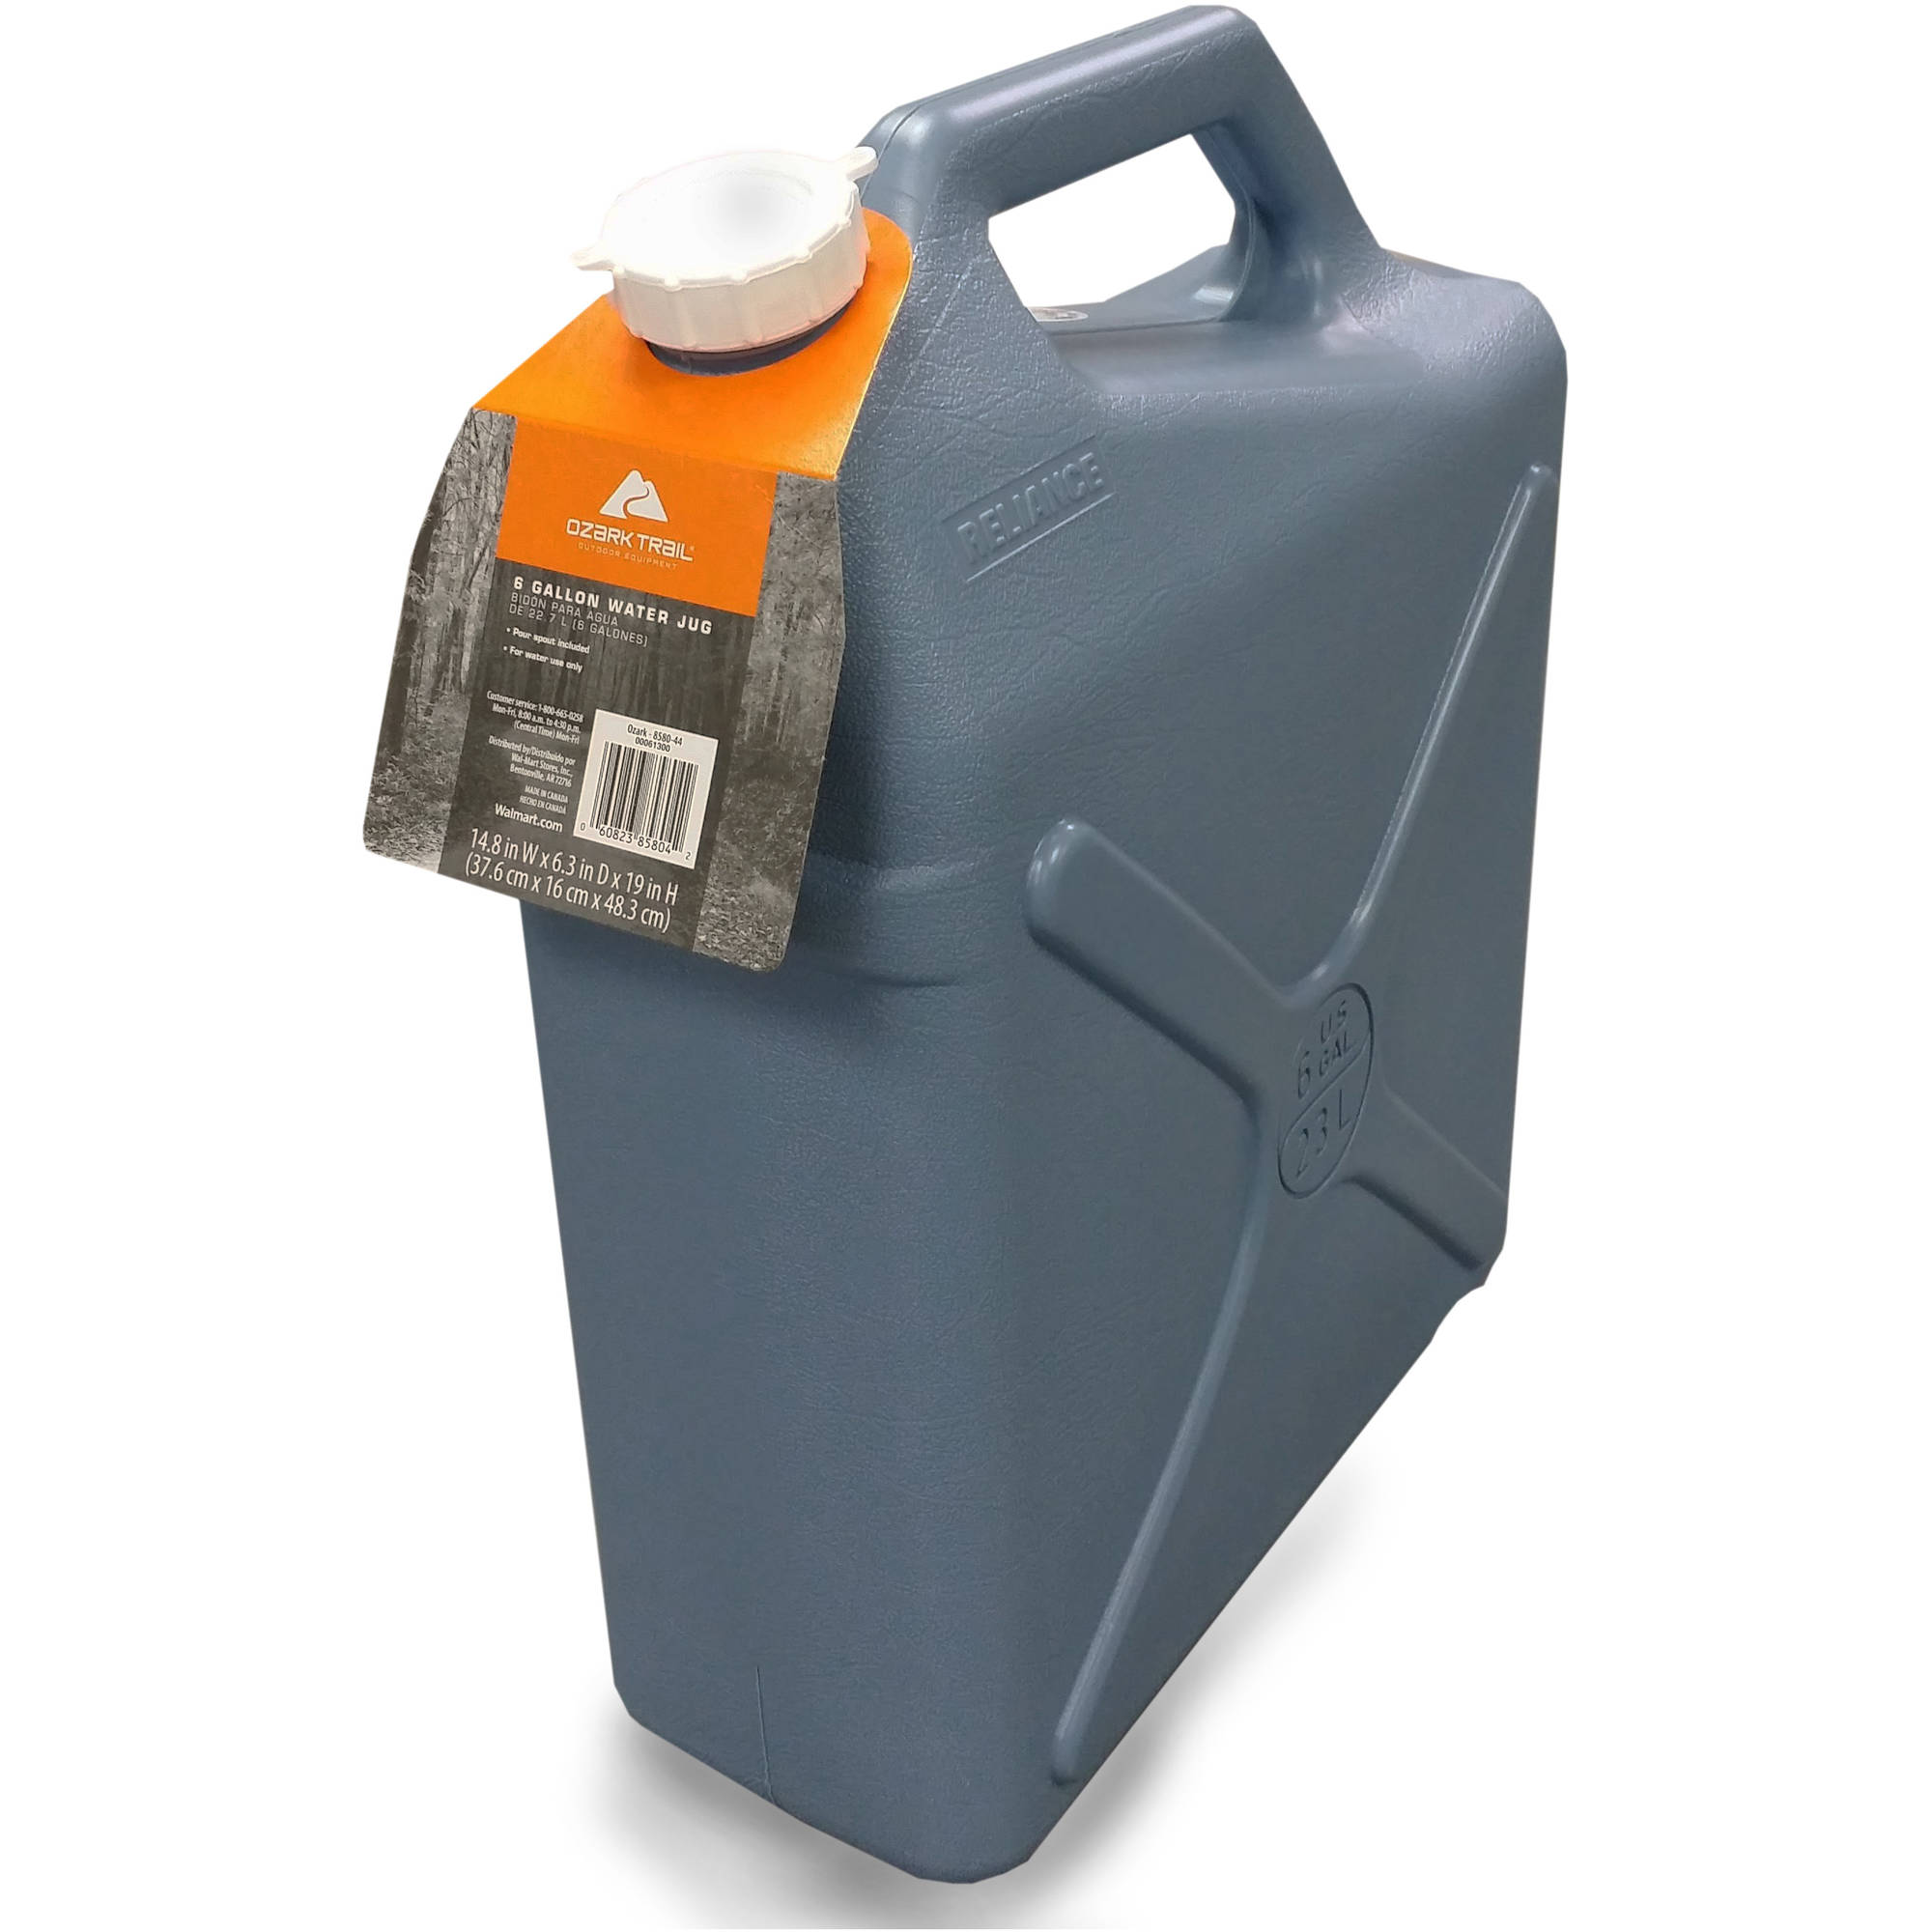 Camping Water Container >> 6 Gallon Water Carrier Jug Jerry Can Style Plastic Container